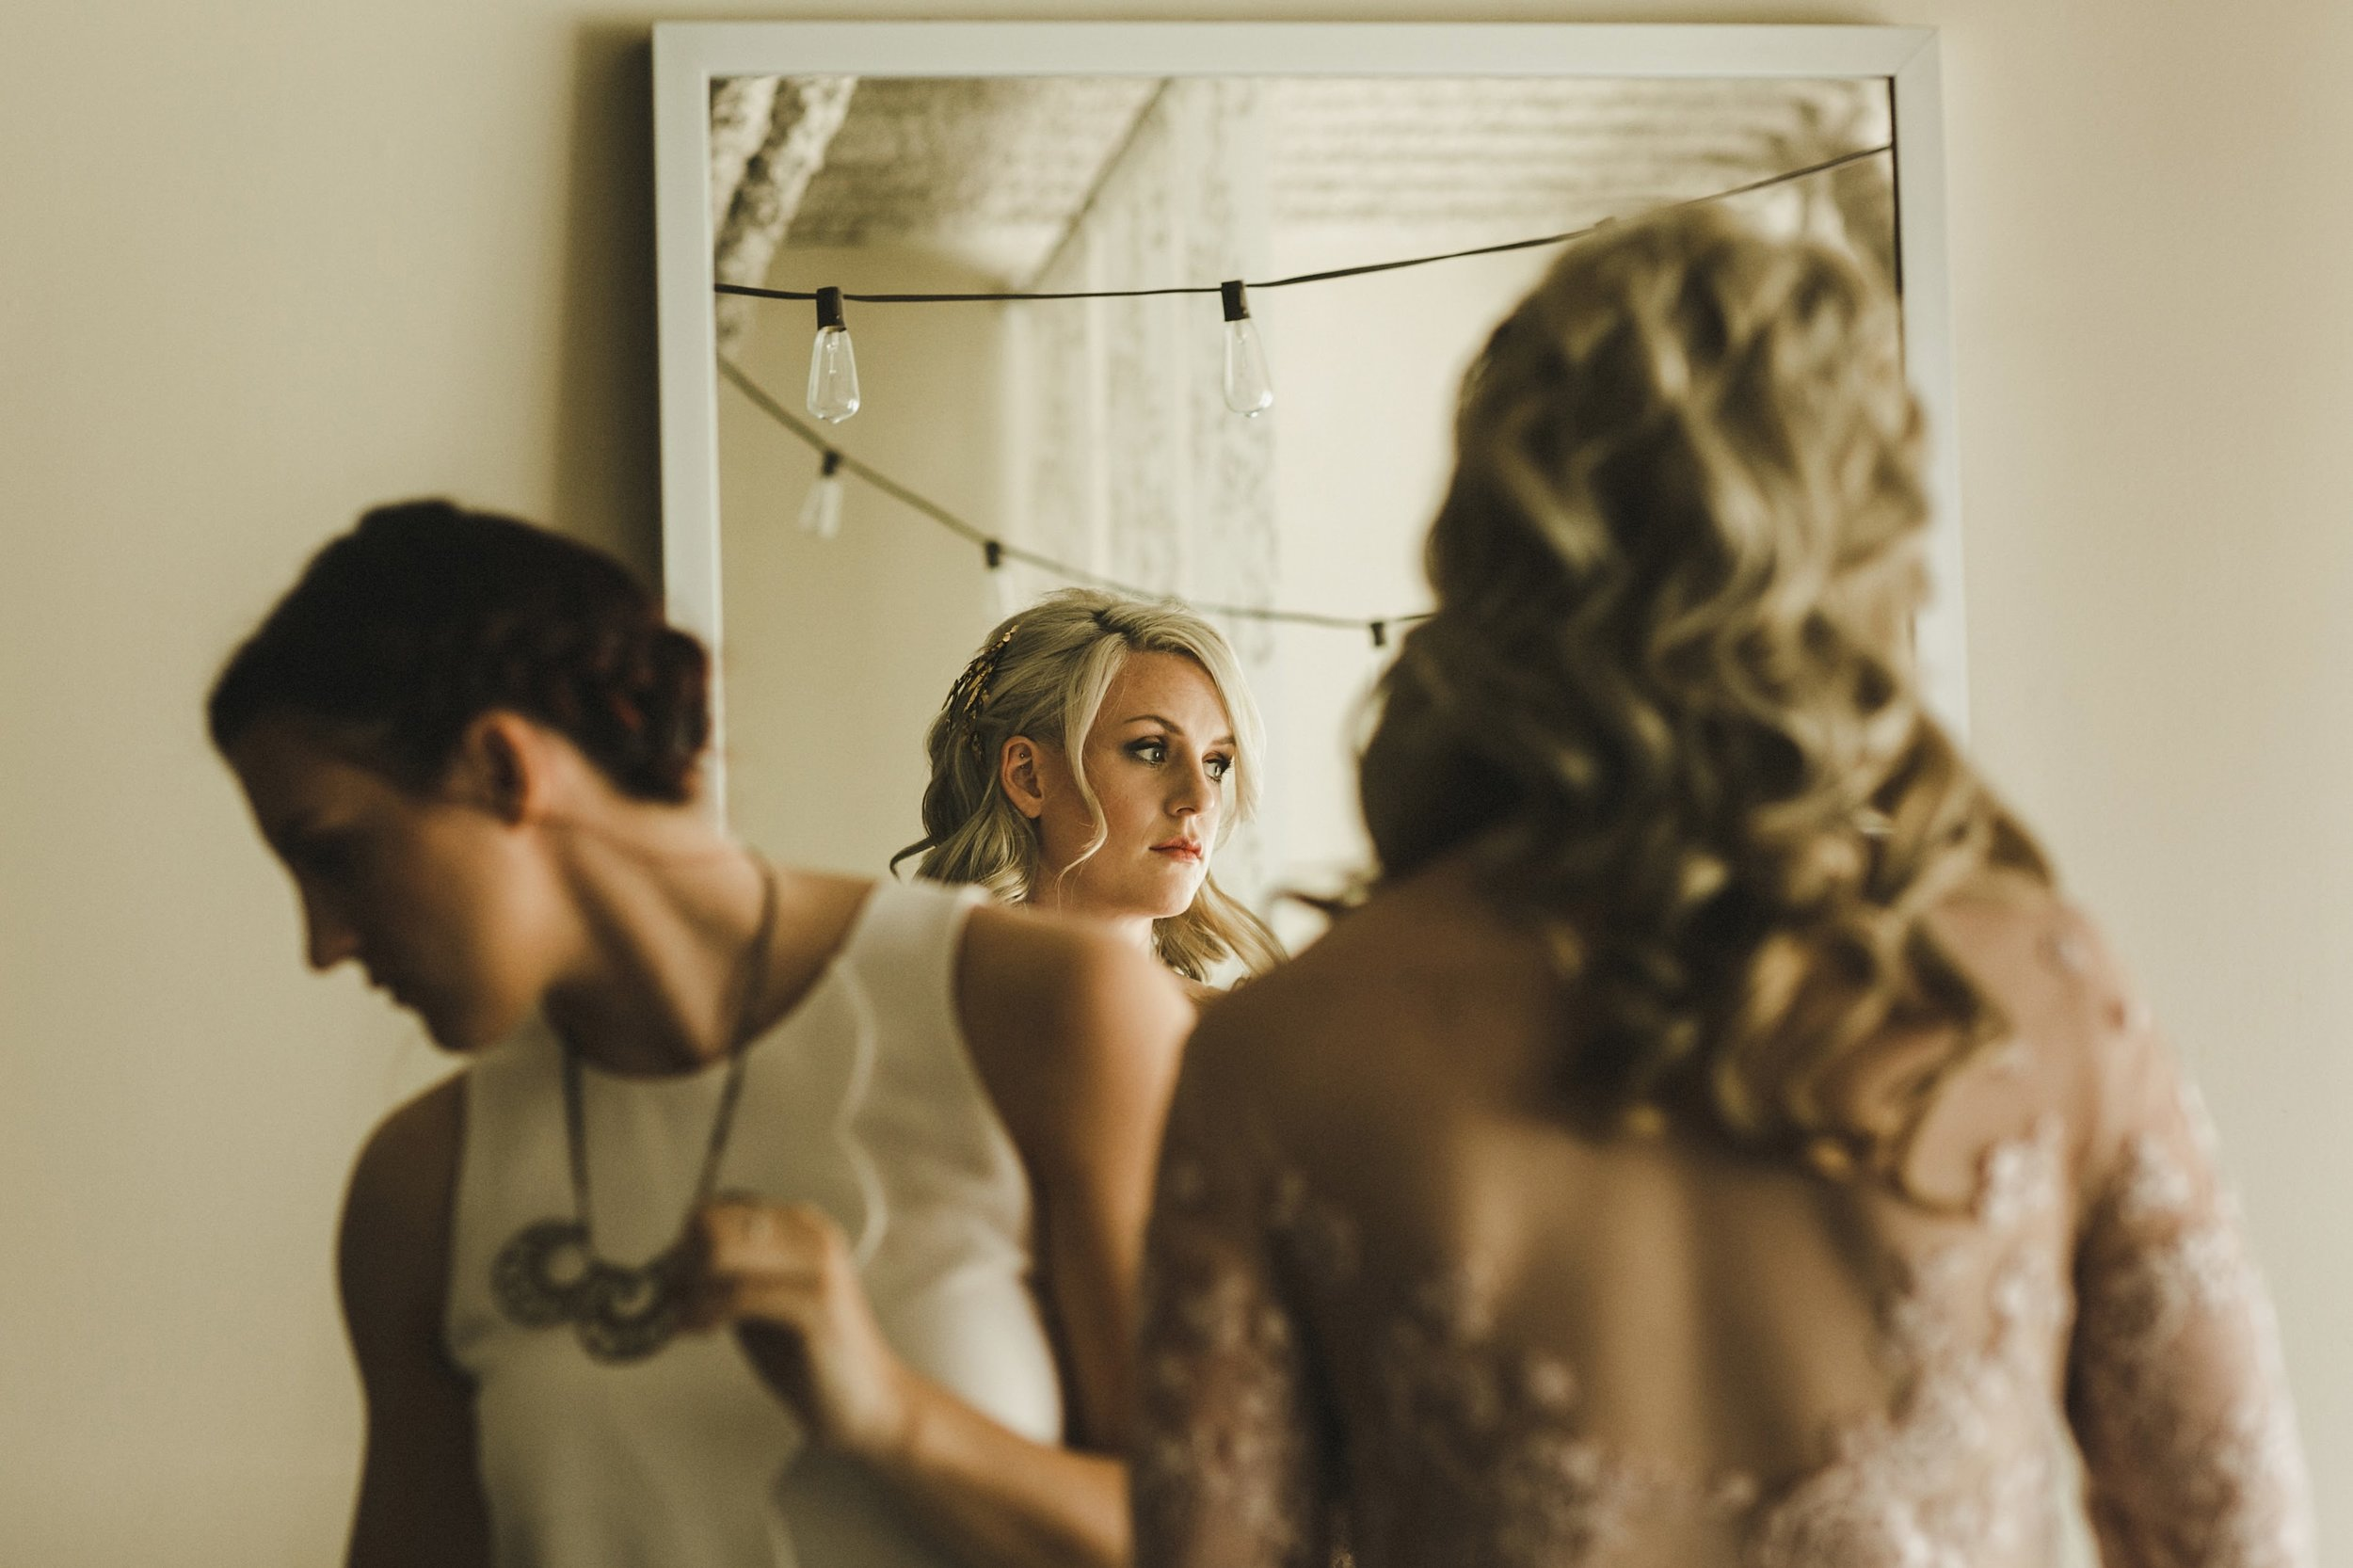 HOWE ABOUT FOREVA - Vancouver urban woodshop wedding by Shari + Mike photographers - getting ready